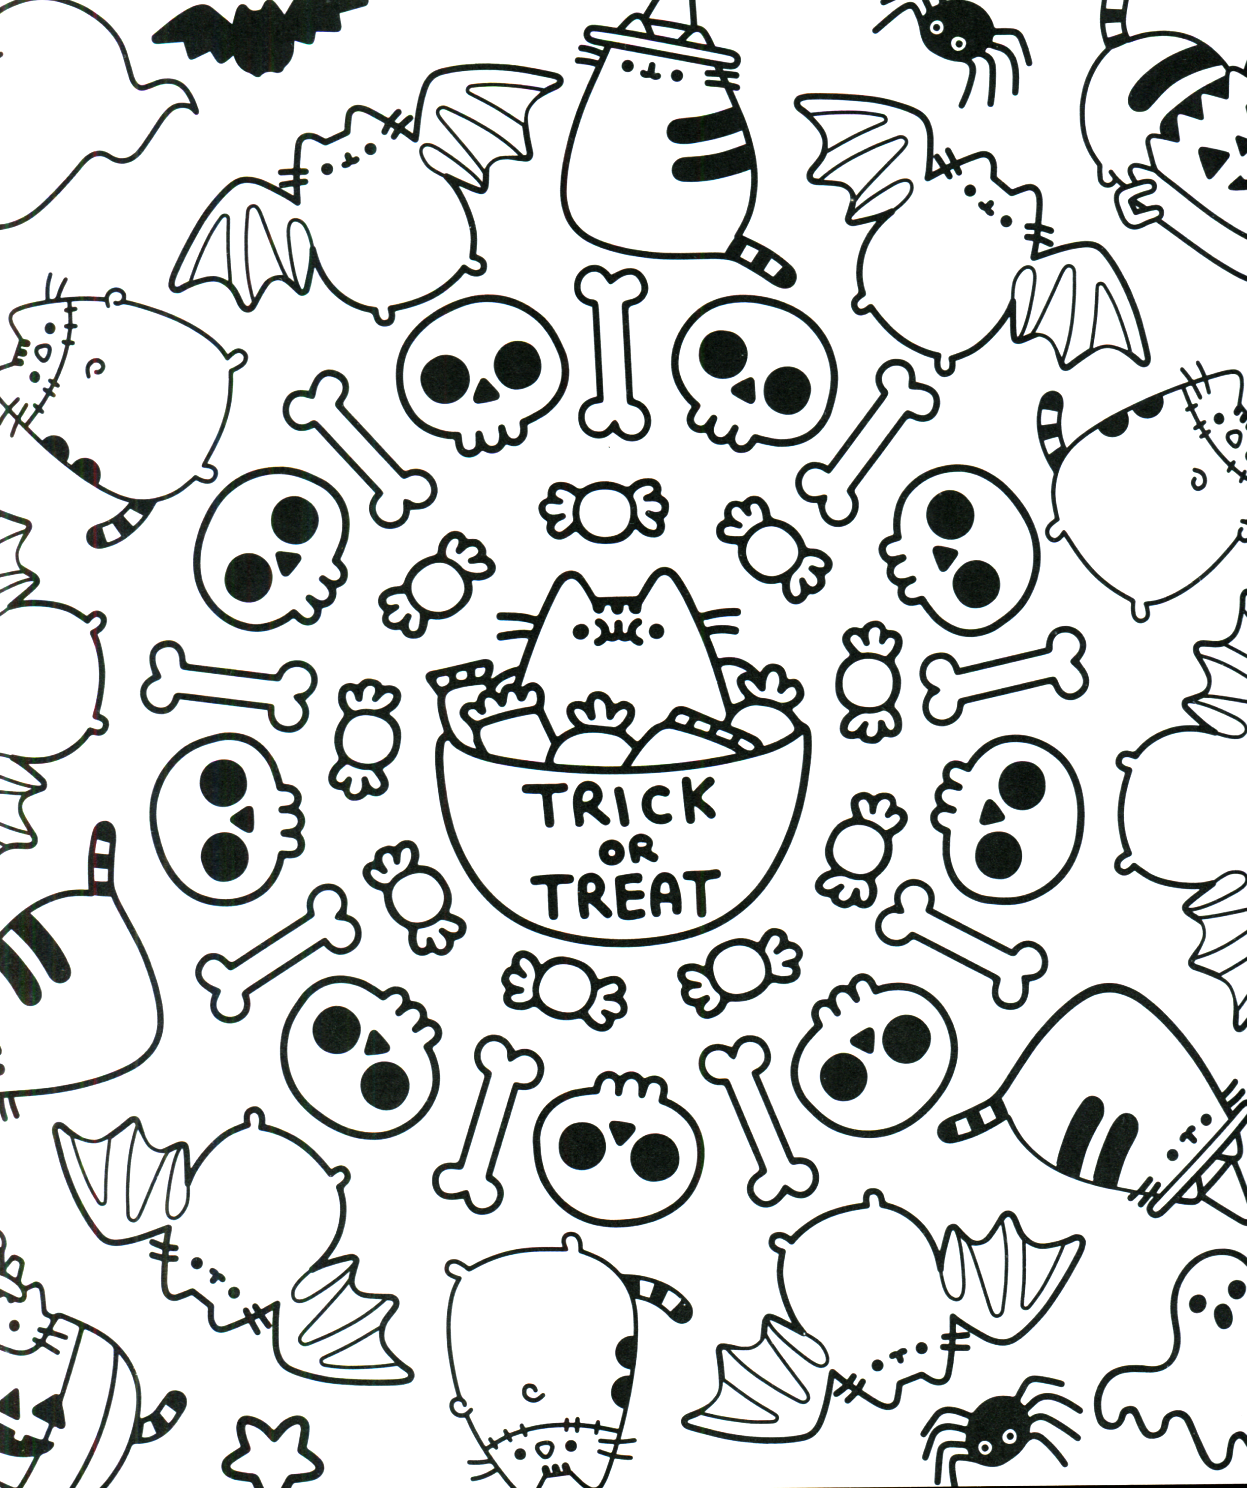 Pusheen Coloring Book Pusheen Pusheen The Cat Pusheen Coloring Pages Halloween Coloring Pages Coloring Pages